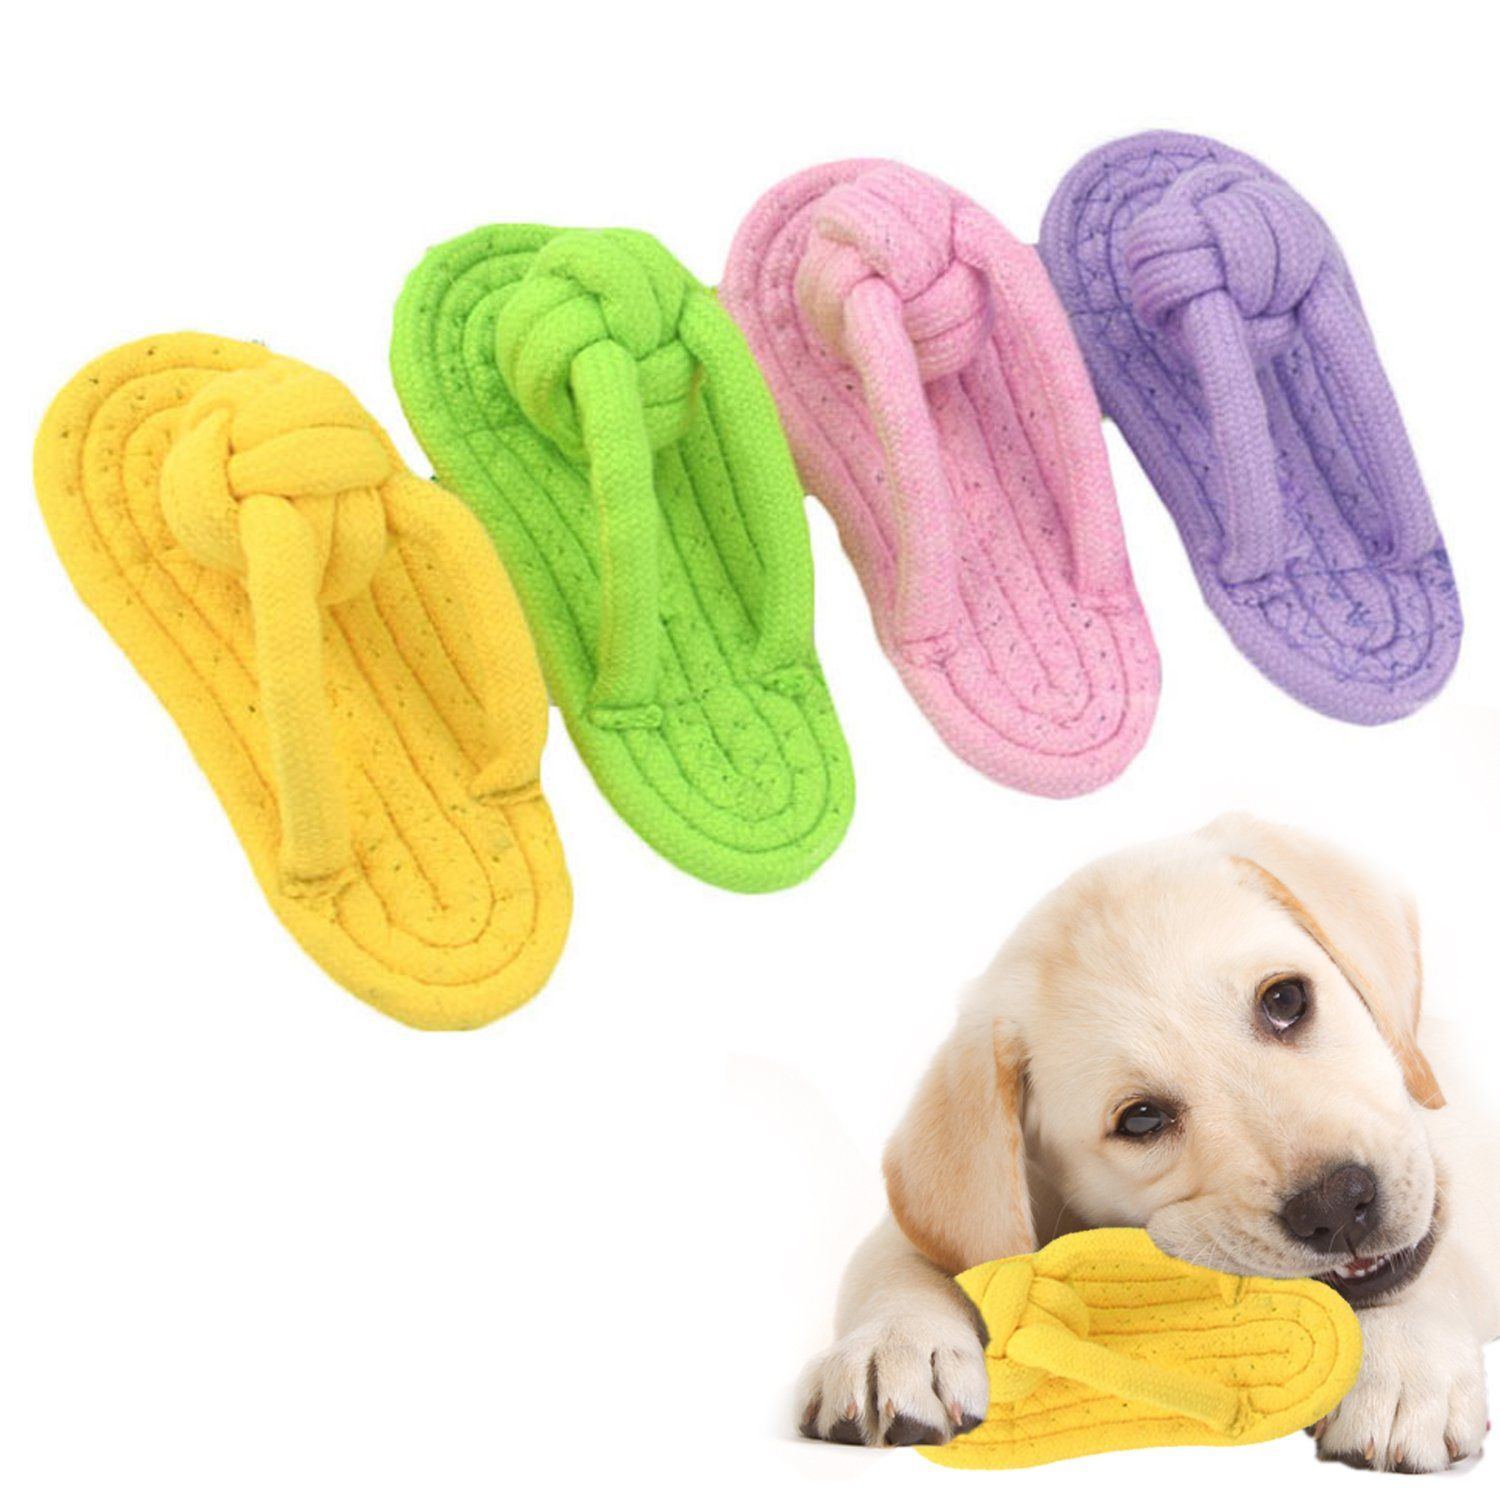 Pet Chew Toys Slipper Shaped Shoes Natural Cotton Rope In 2020 Puppy Toys Teething Puppy Teething Dog Toys